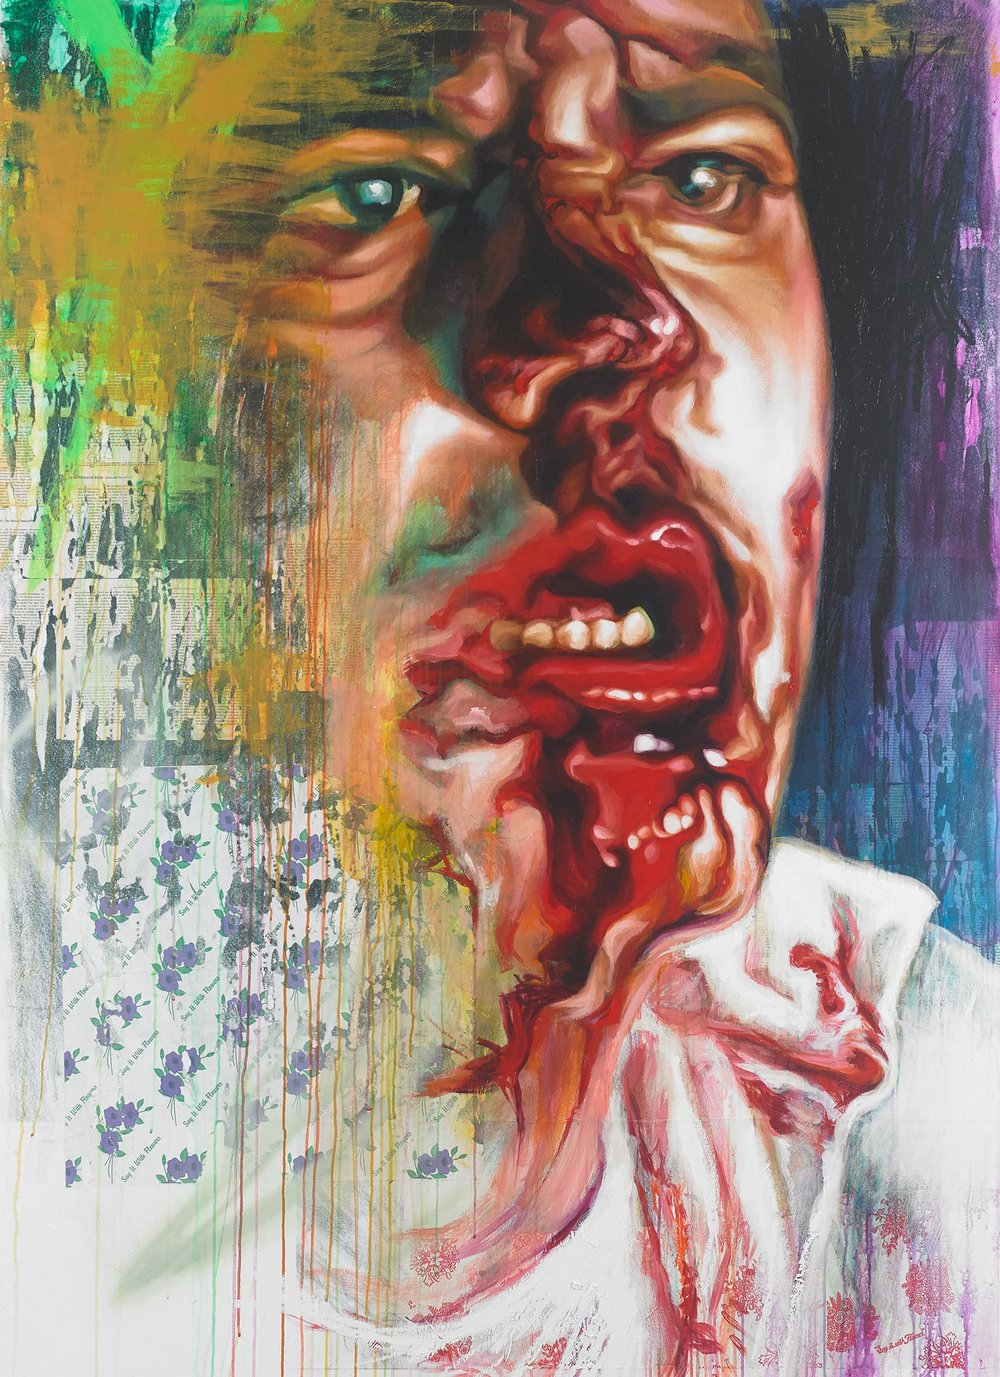 Punching Bag Portrait   Mixed Media on Canvas 57in x 78in